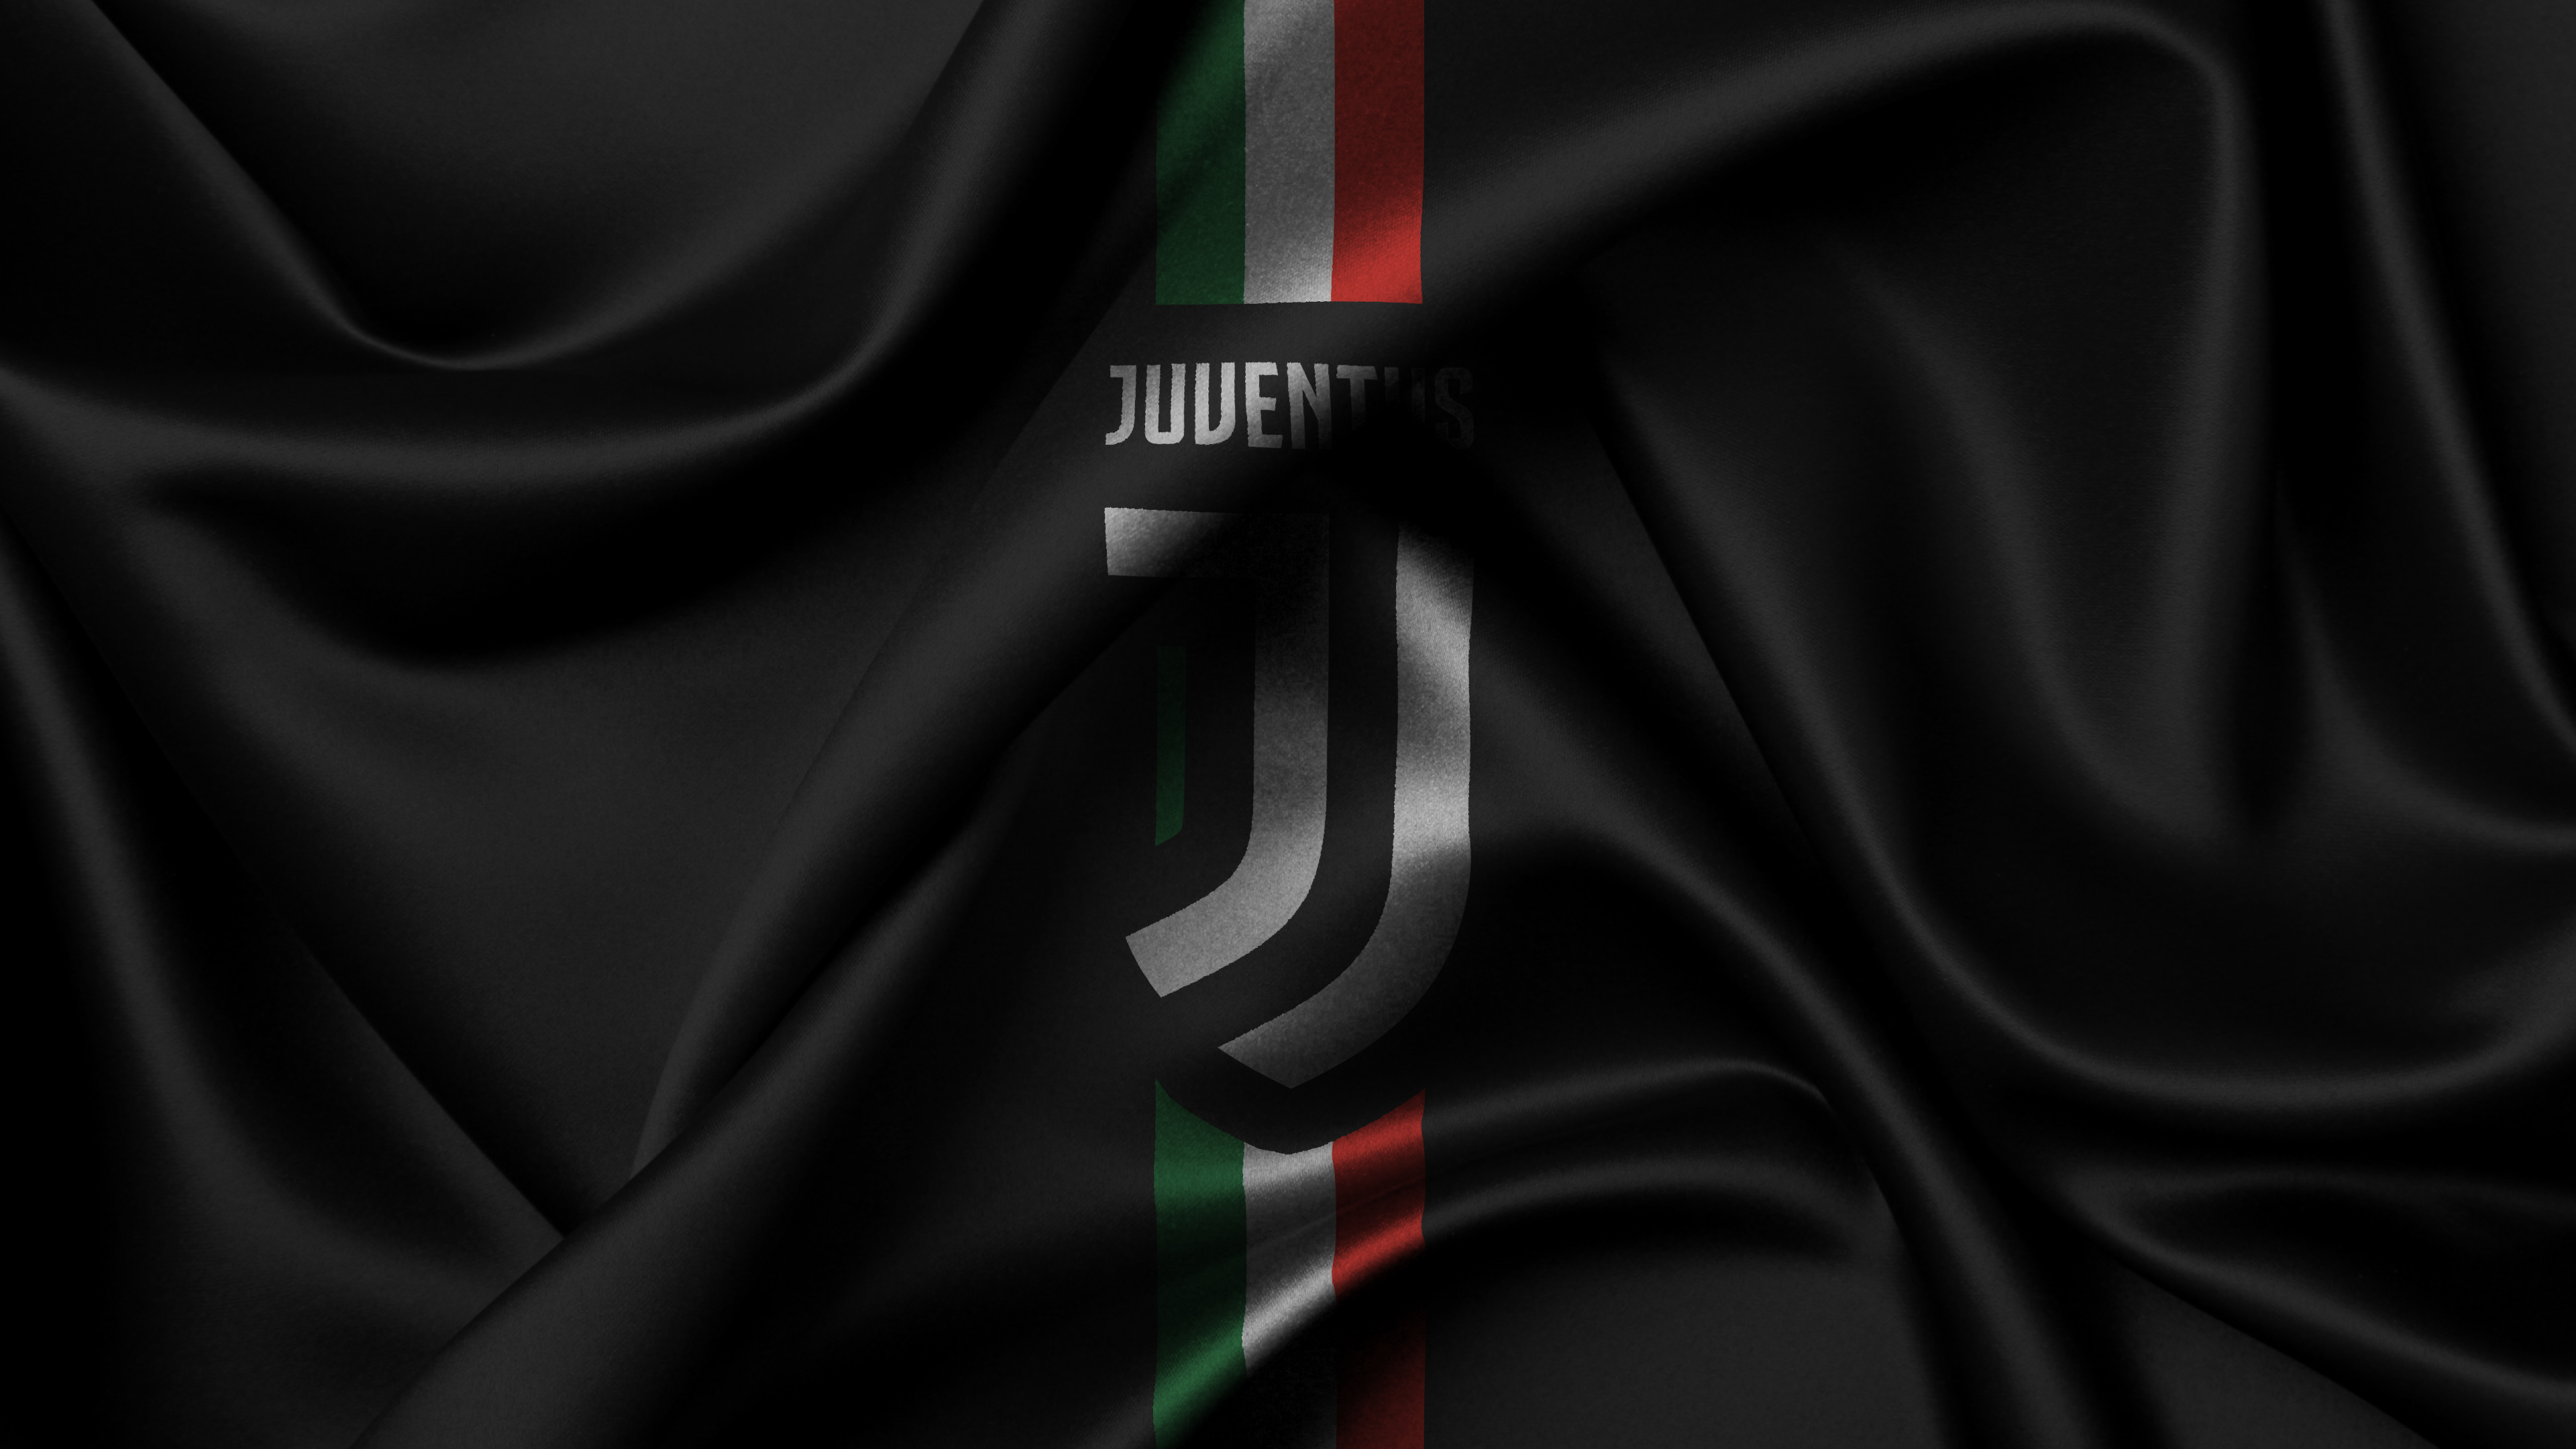 Download wallpapers Juventus, 4k, new logo, Serie A, Italy, football, new Juventus emblem, Turin